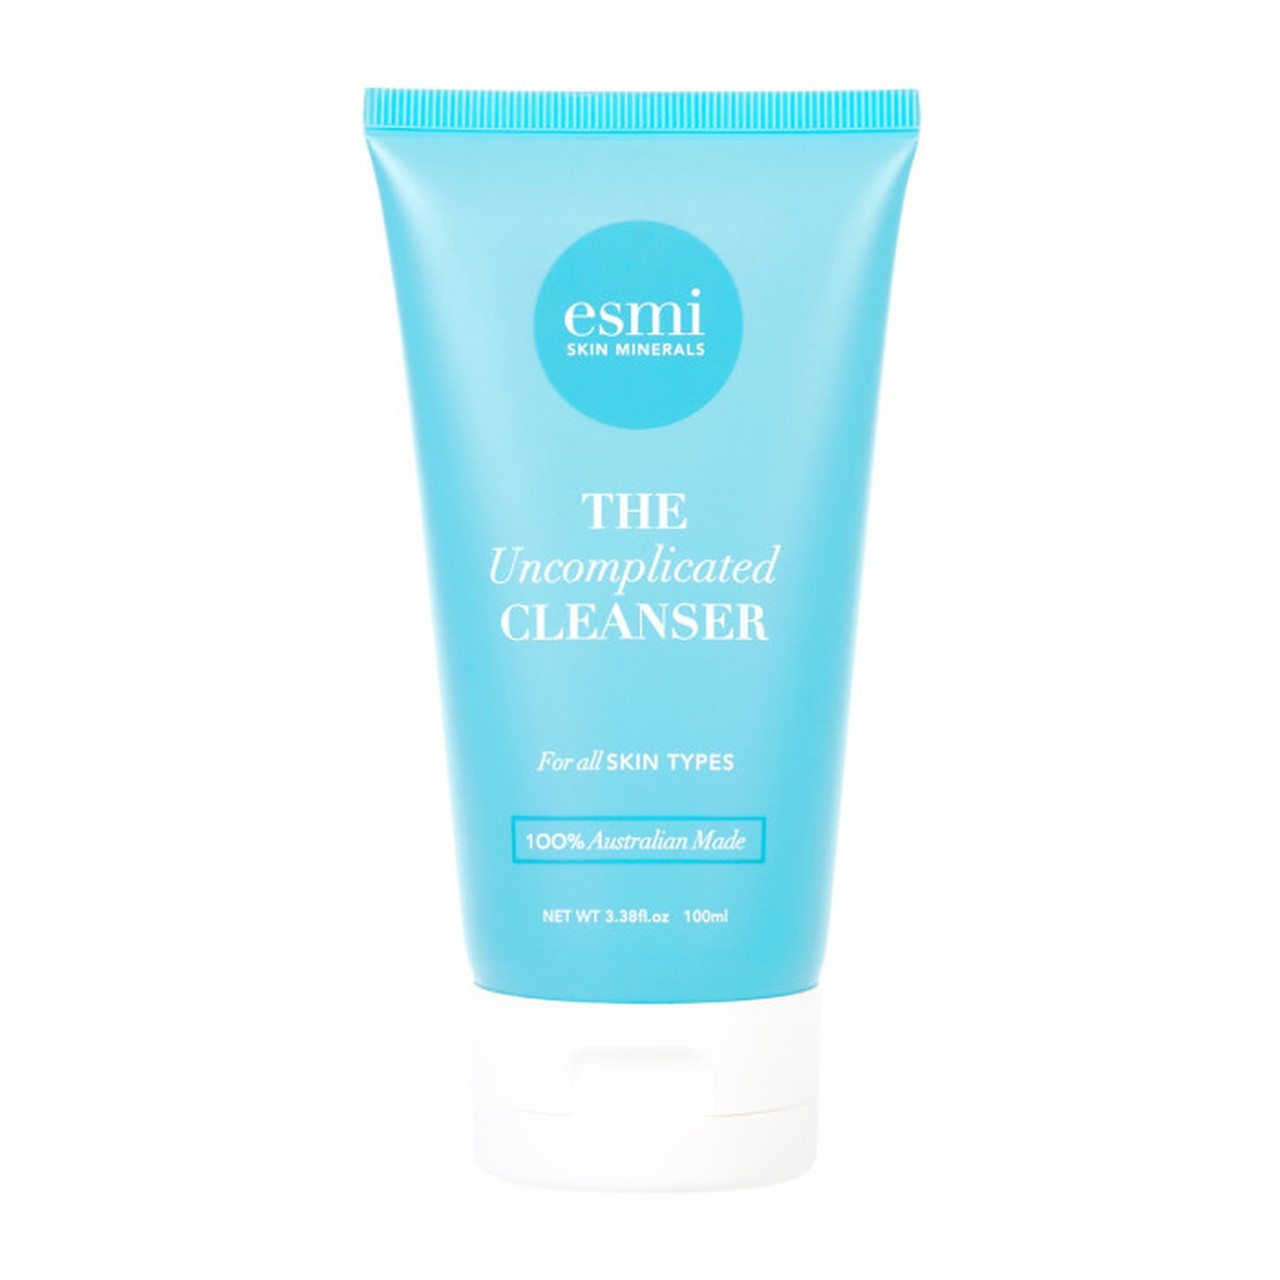 Esmi The Uncomplicated Cleanser With Charcoal